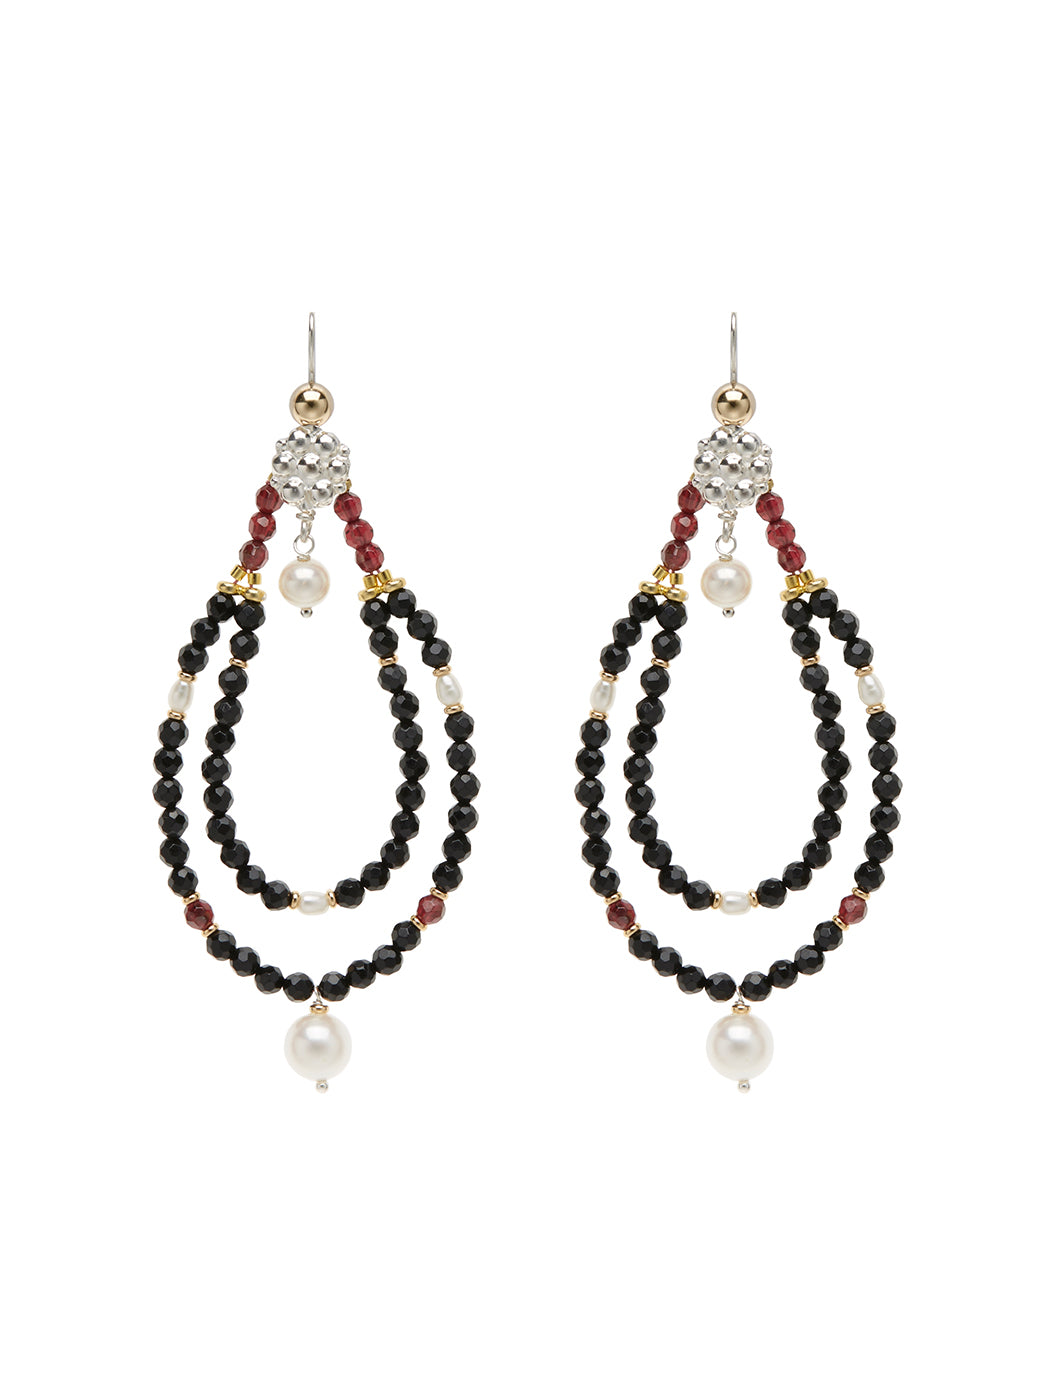 Fiorina Jewellery Rahini Earrings Black Onyx